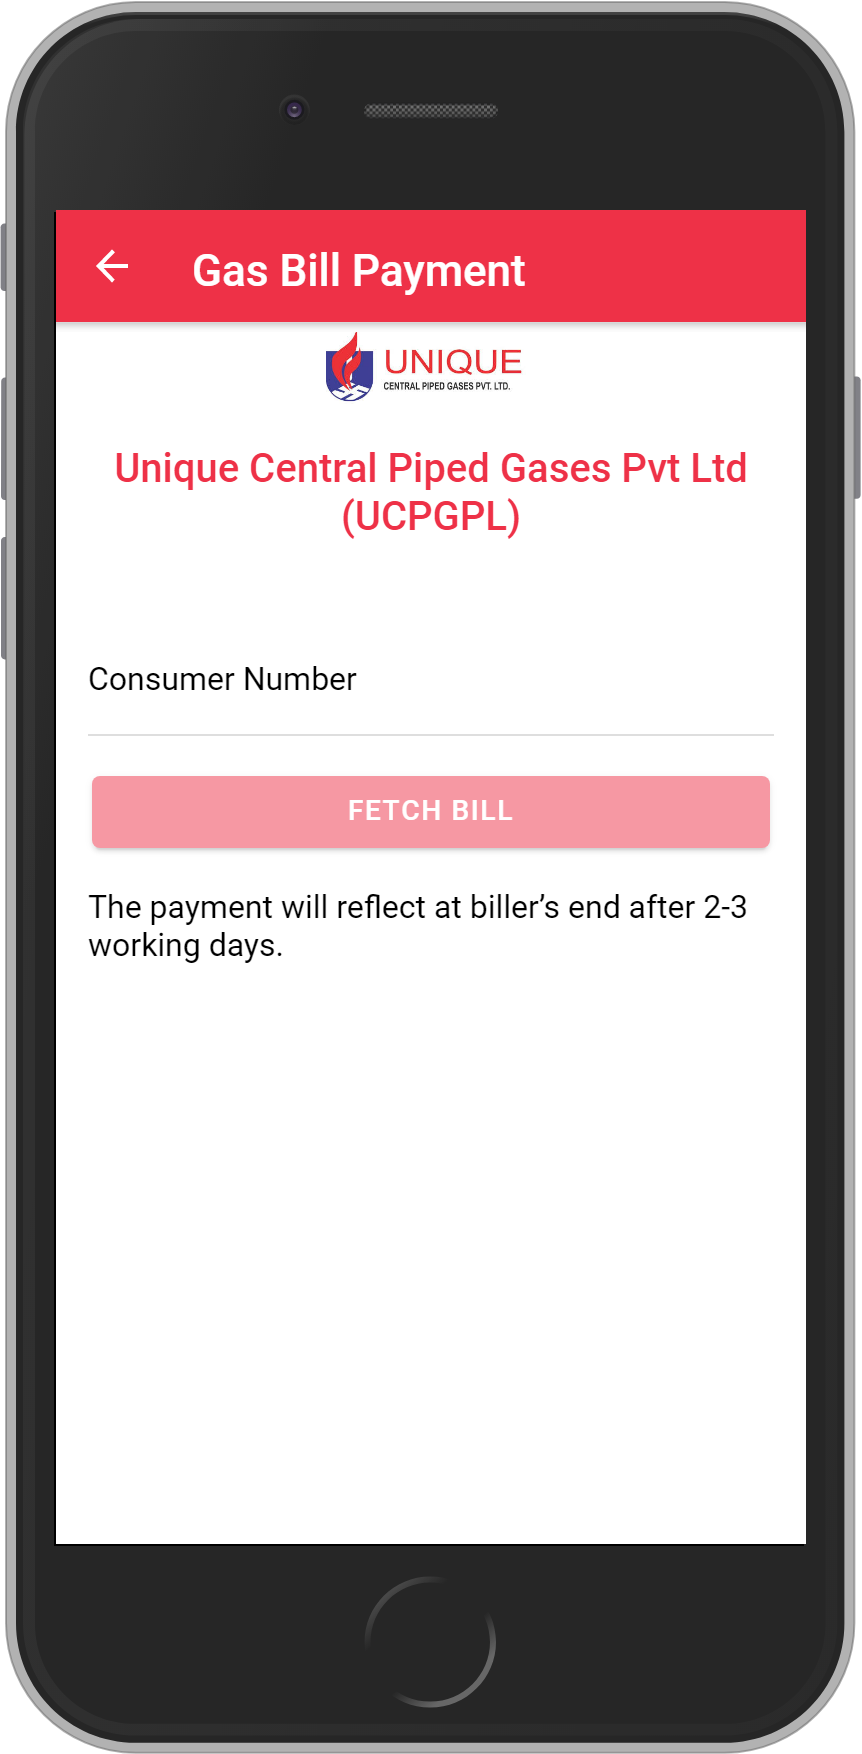 Get UNLIMITED <b>0.1%</b> CASHBACK on Unique Central Piped Gases Pvt Ltd (UCPGPL) Bill Payment.